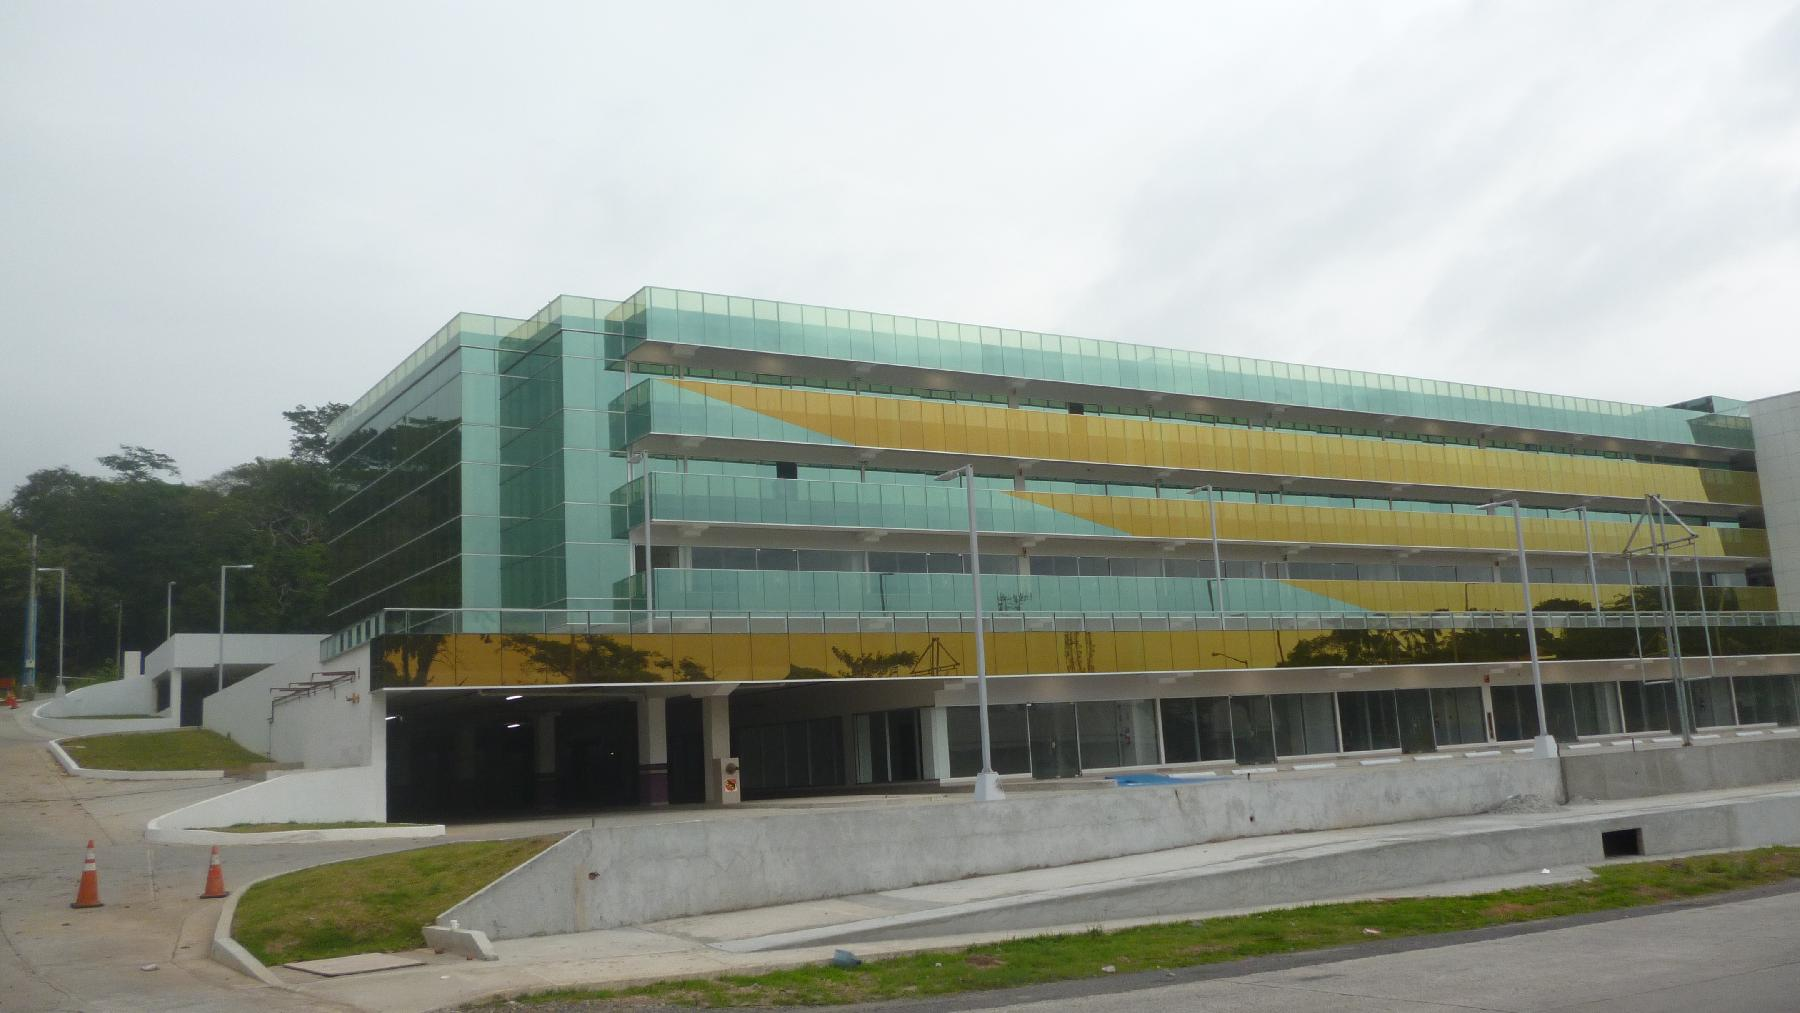 ALBROOK, COMMERCIAL SPACES IN TERRAZAS DE ALBROOK